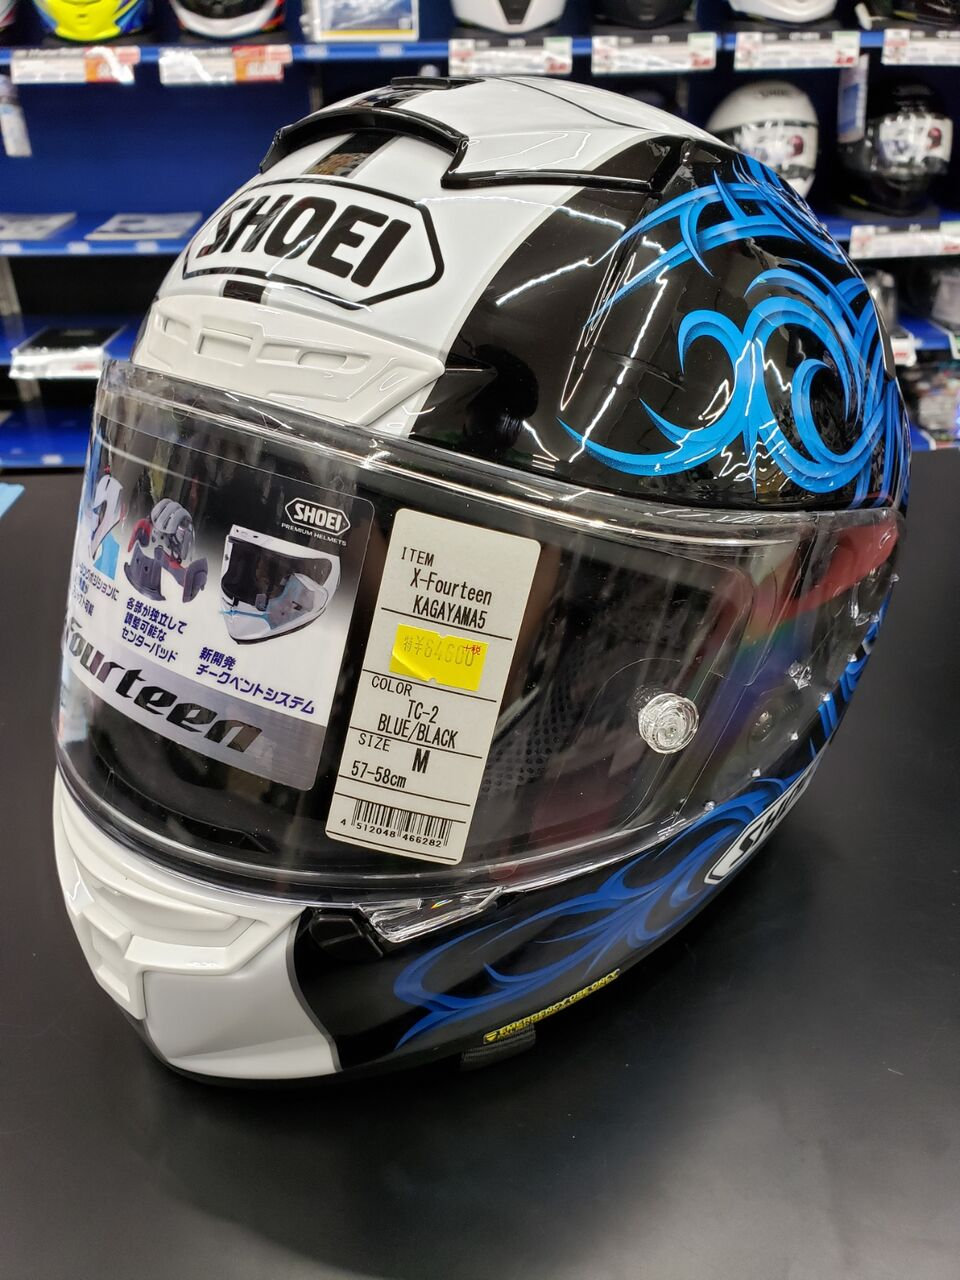 SHOEI X-Fourteen KAGAYAMA5 TC-2(BLUE/BLACK)